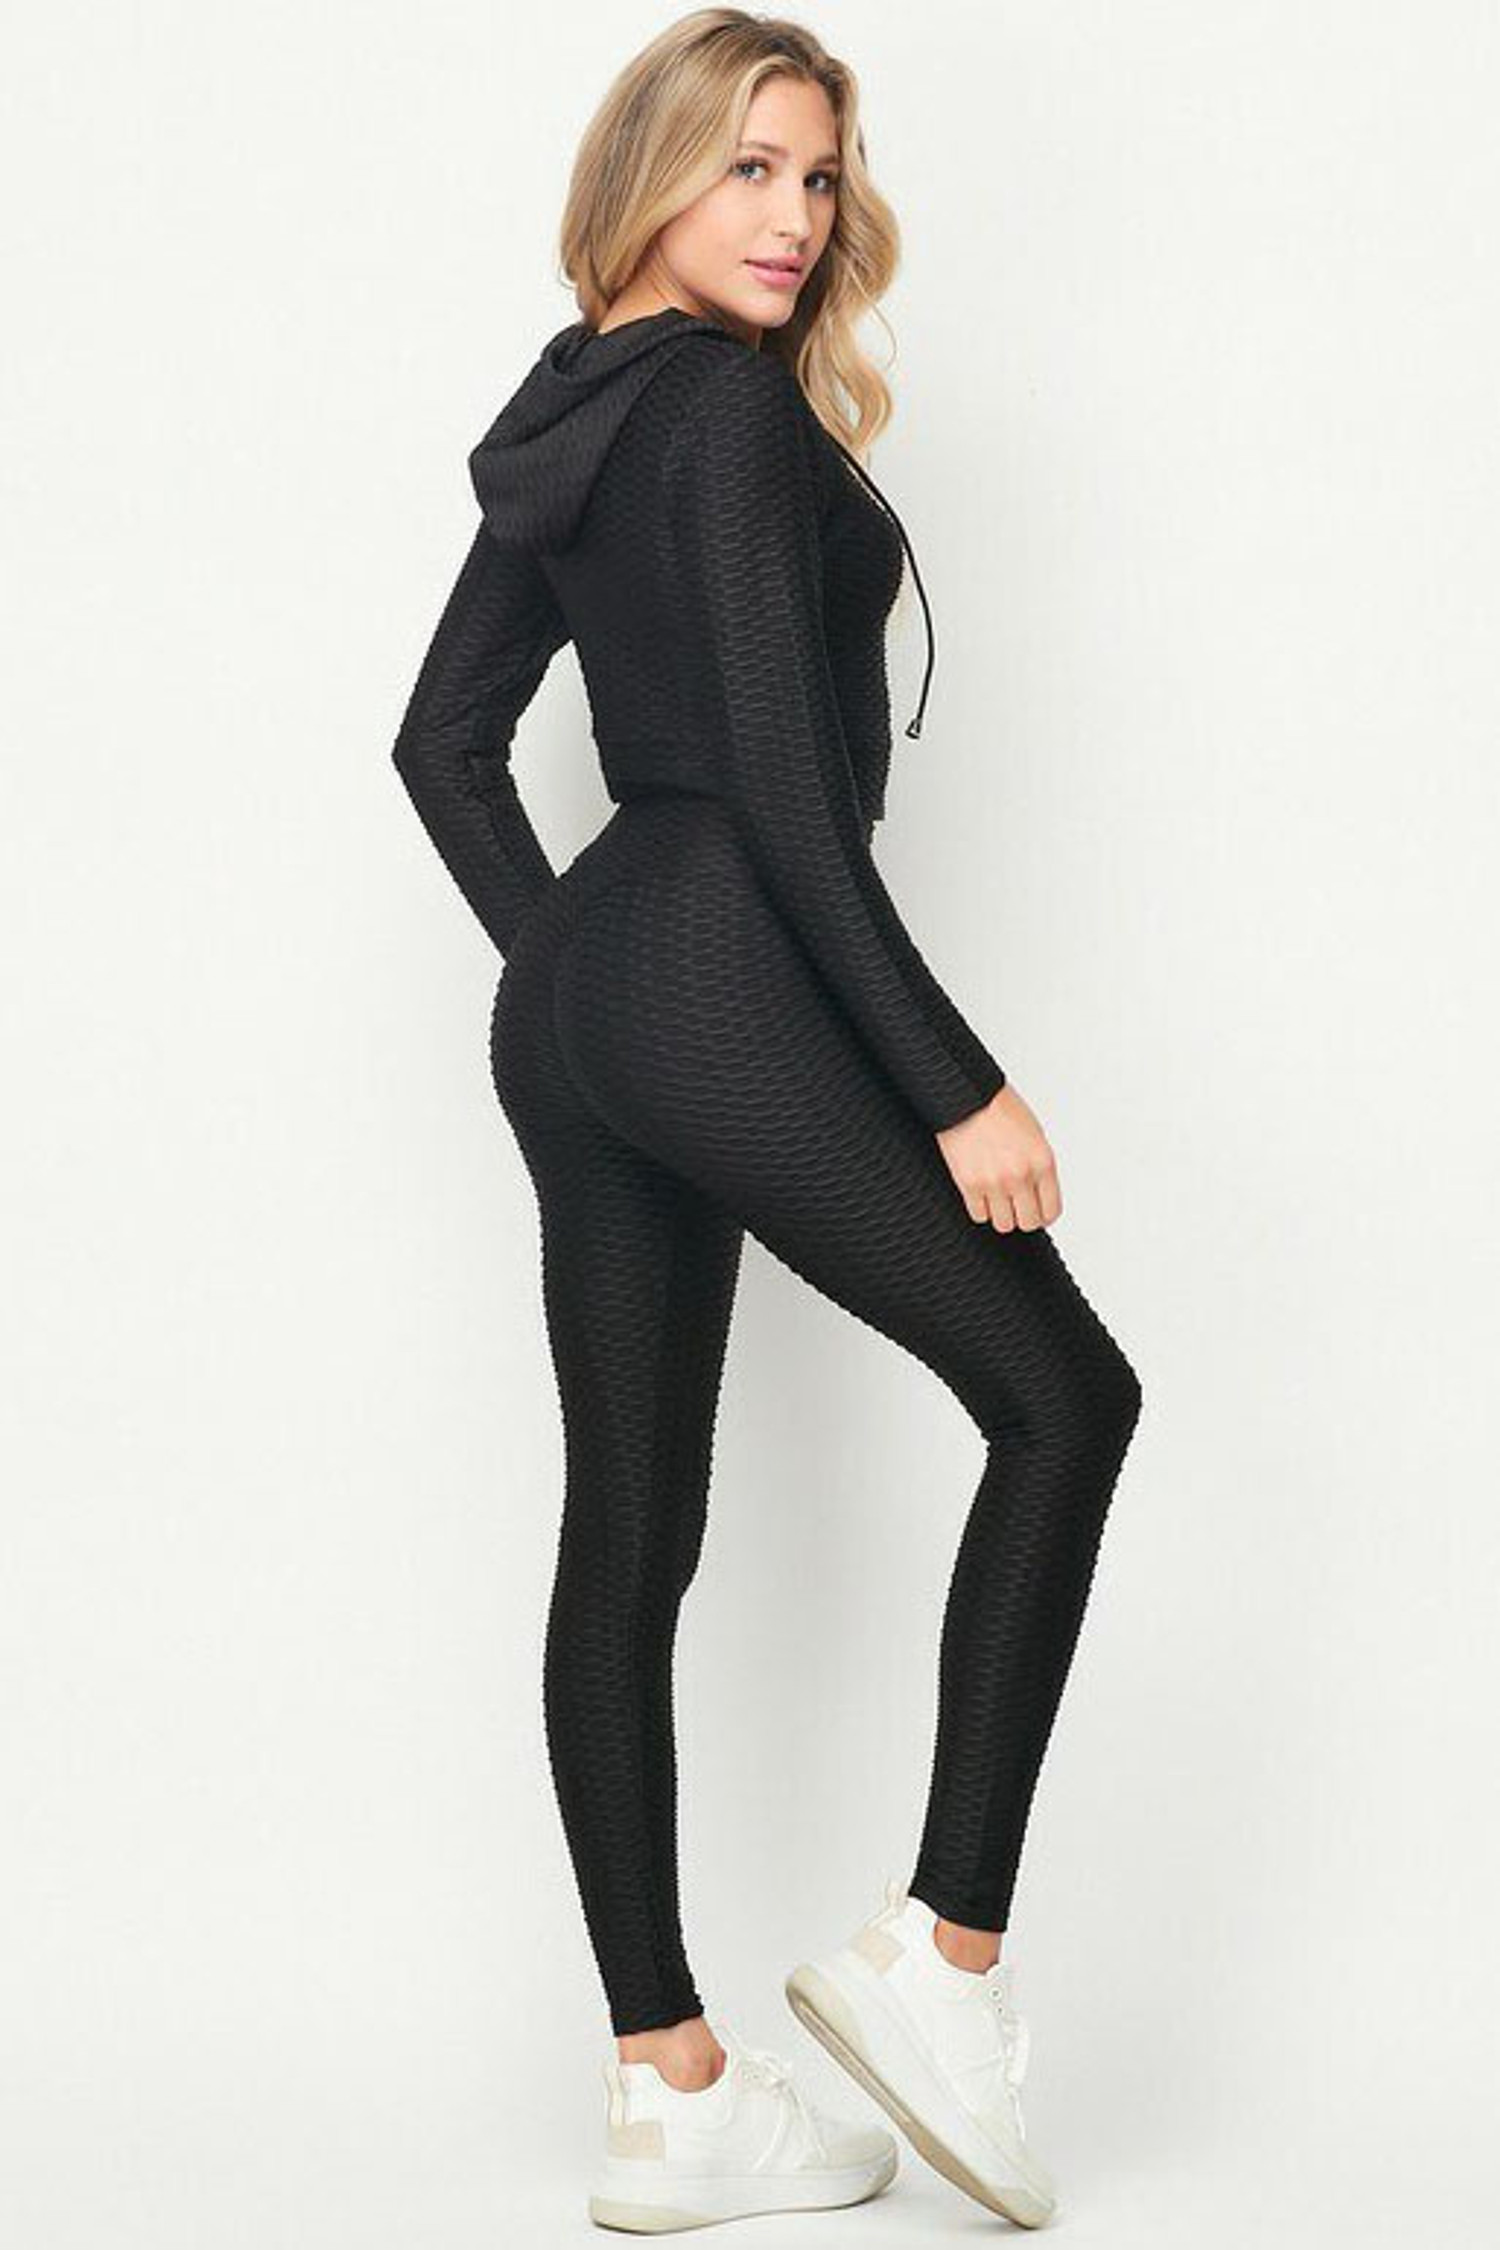 2 Piece Scrunch Butt Leggings and Cropped Hooded Jacket Set